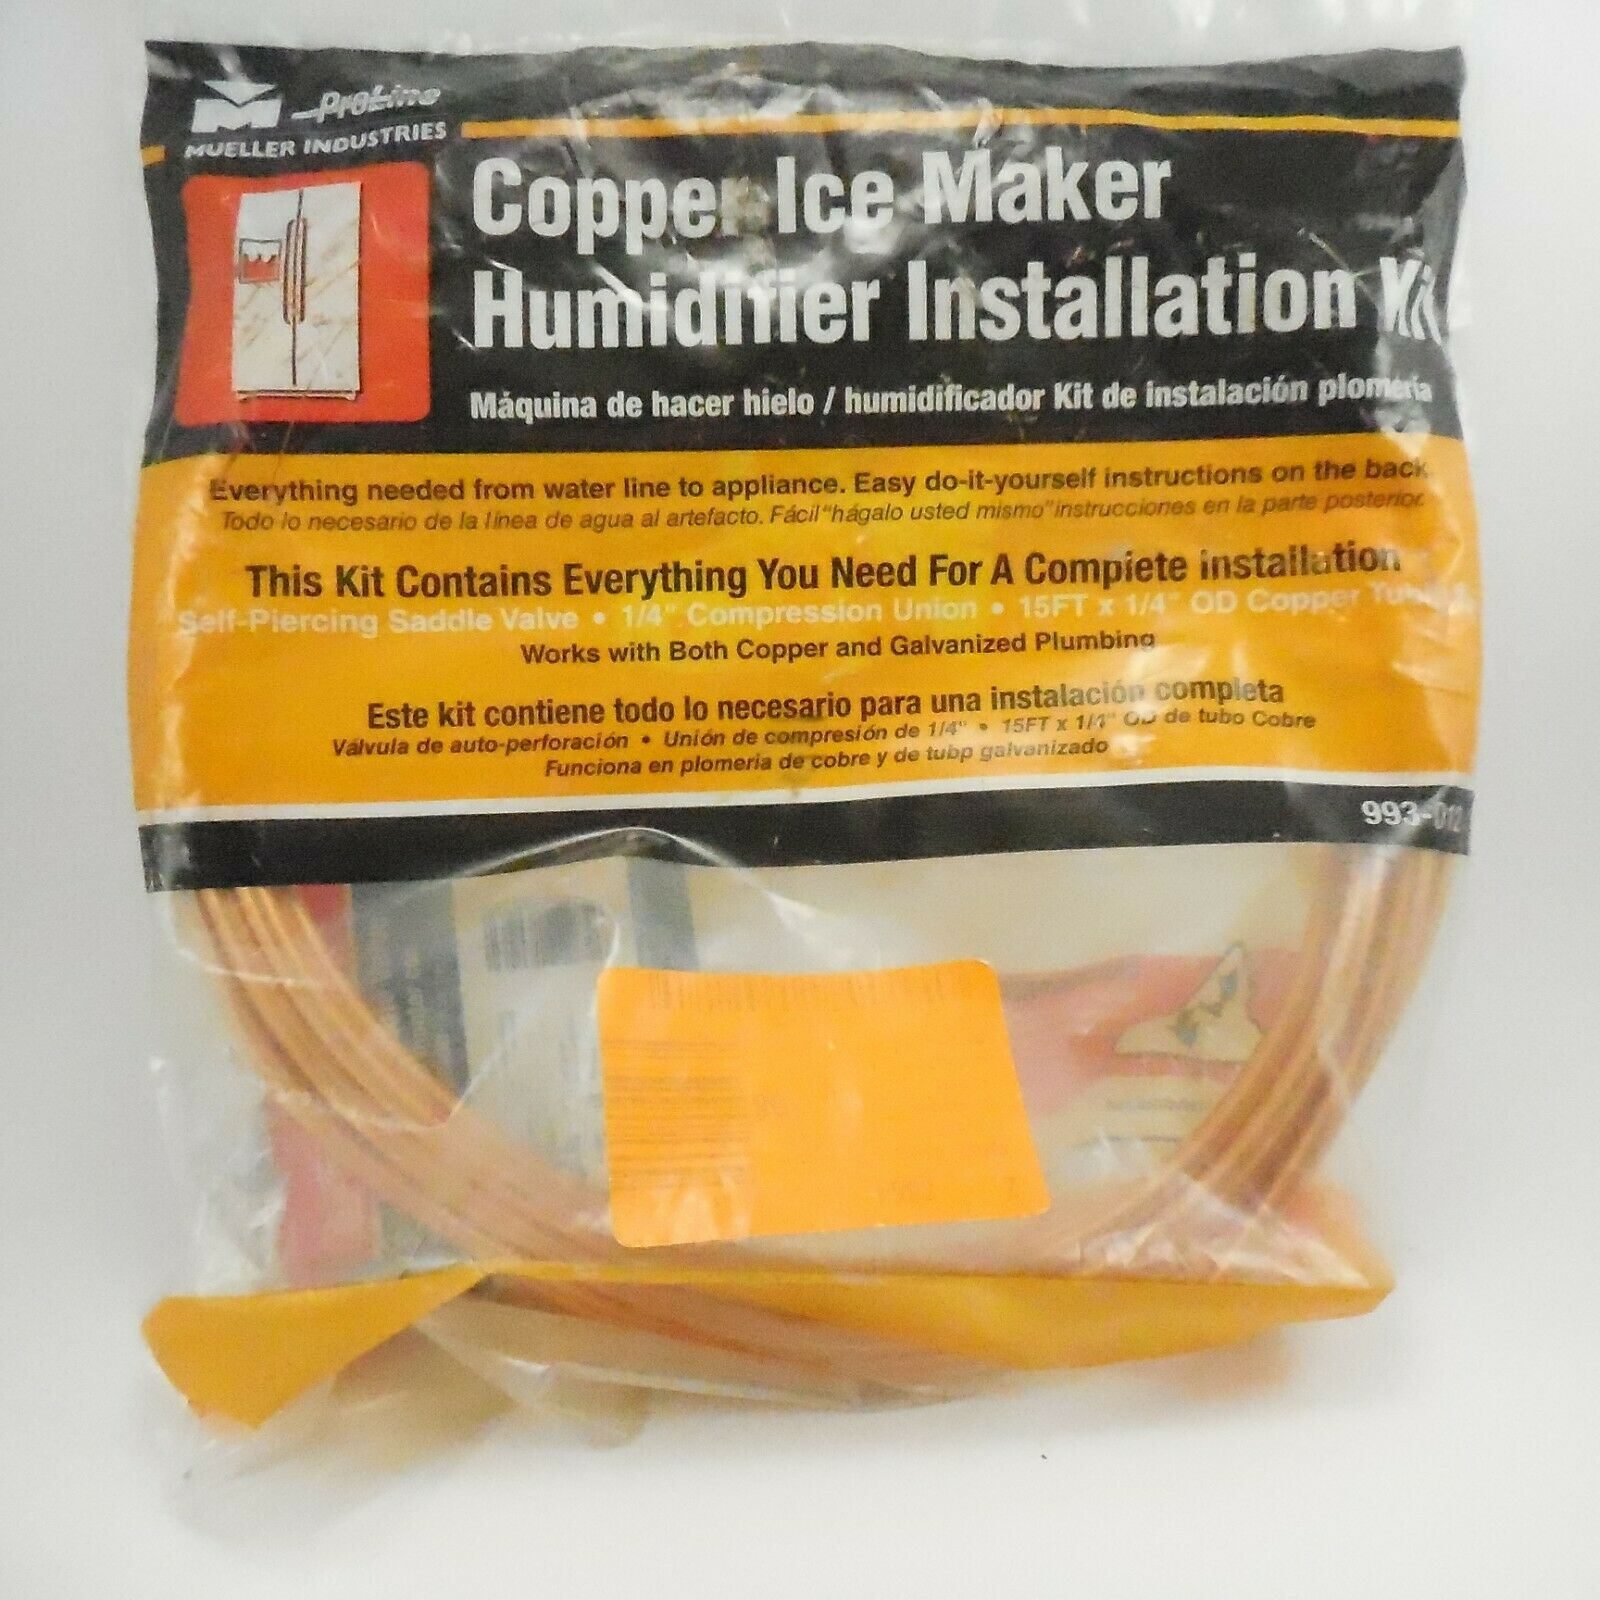 Humidifier Installation Kit Copper Ice Maker